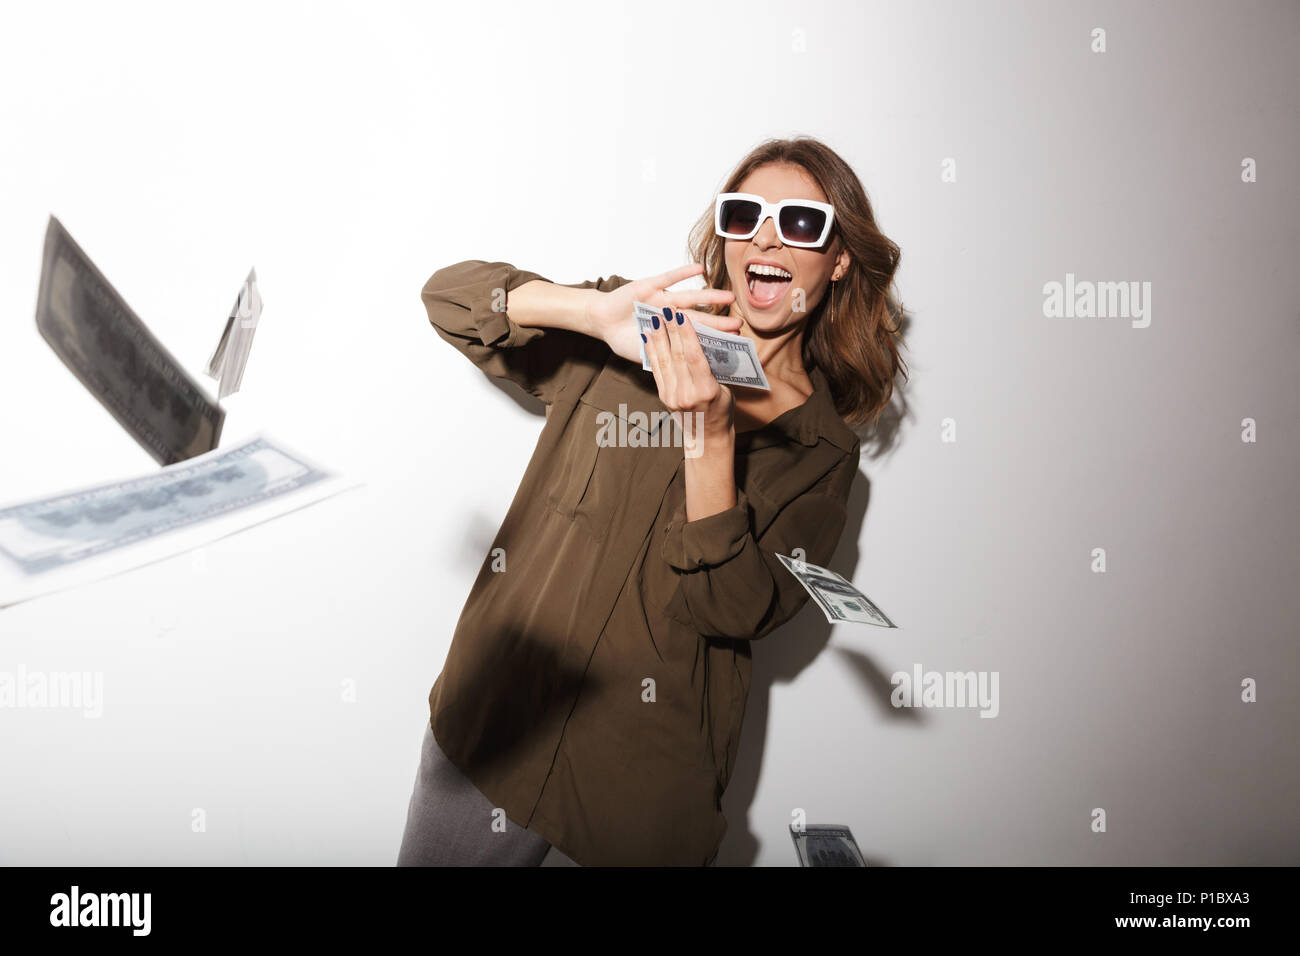 Portrait of a joyful young woman in sunglasses throwing out money banknotes isolated over white background - Stock Image